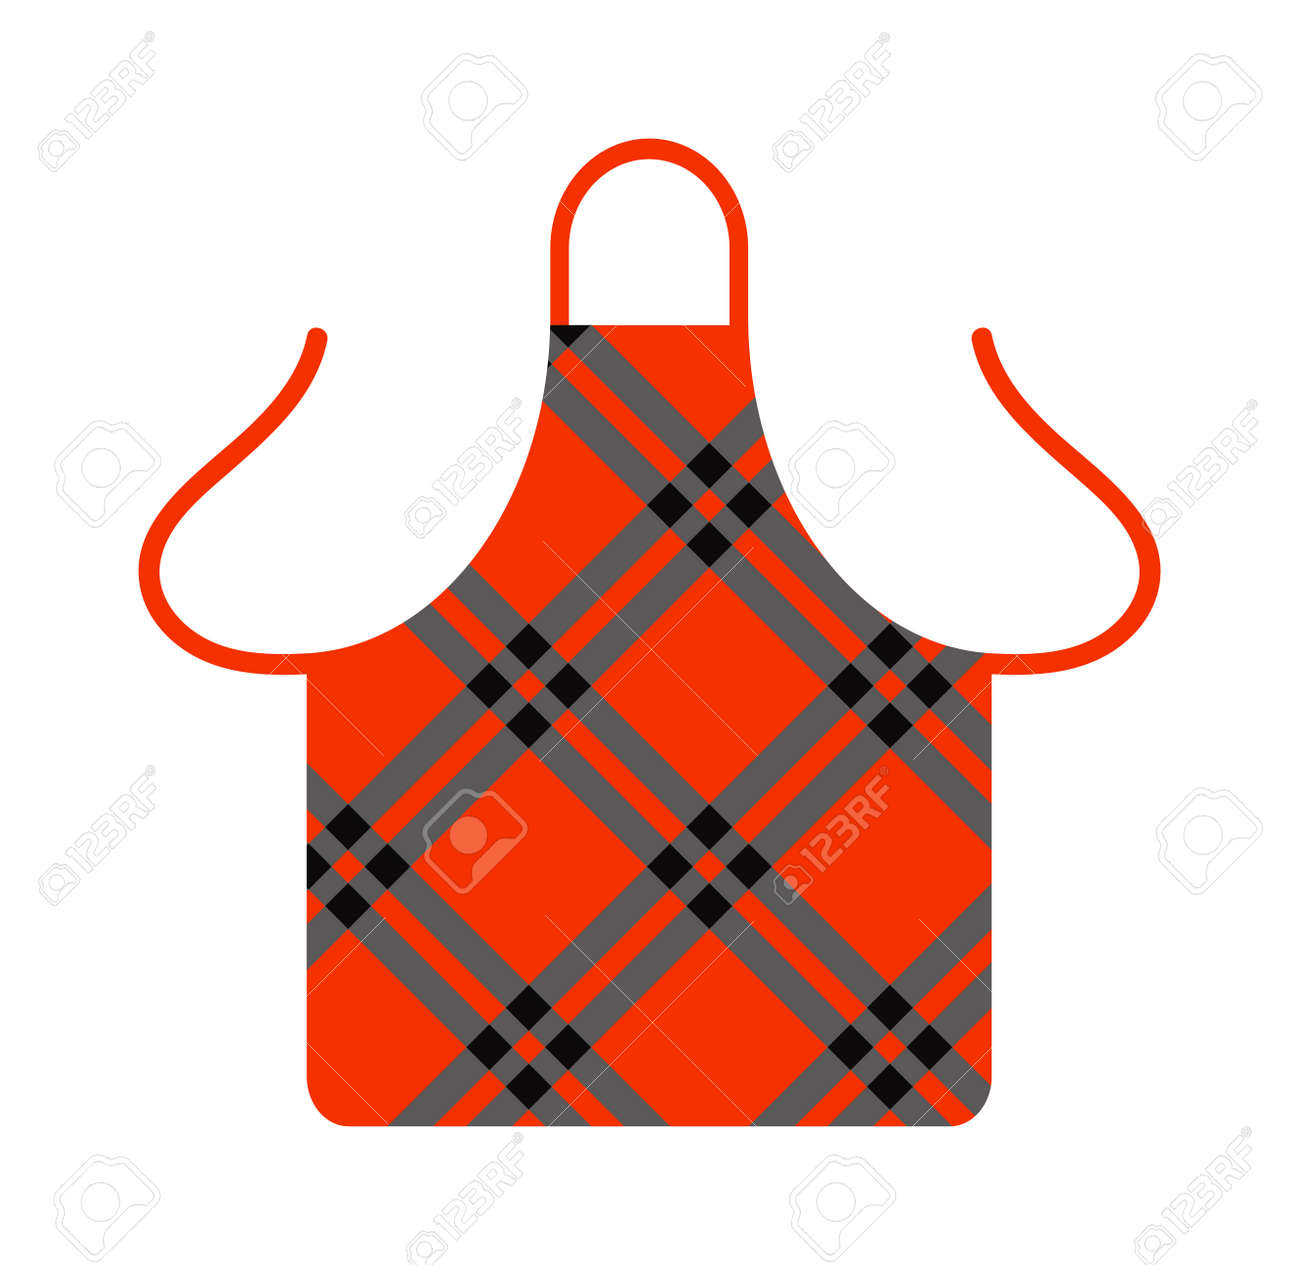 Tablier De Cuisine Cuisine Cuisine Tablier Chef Uniforme Des Vêtements De Protection Illustration Vectorielle Tablier De Cuisine Chef Uniforme Et Cuisine Textile